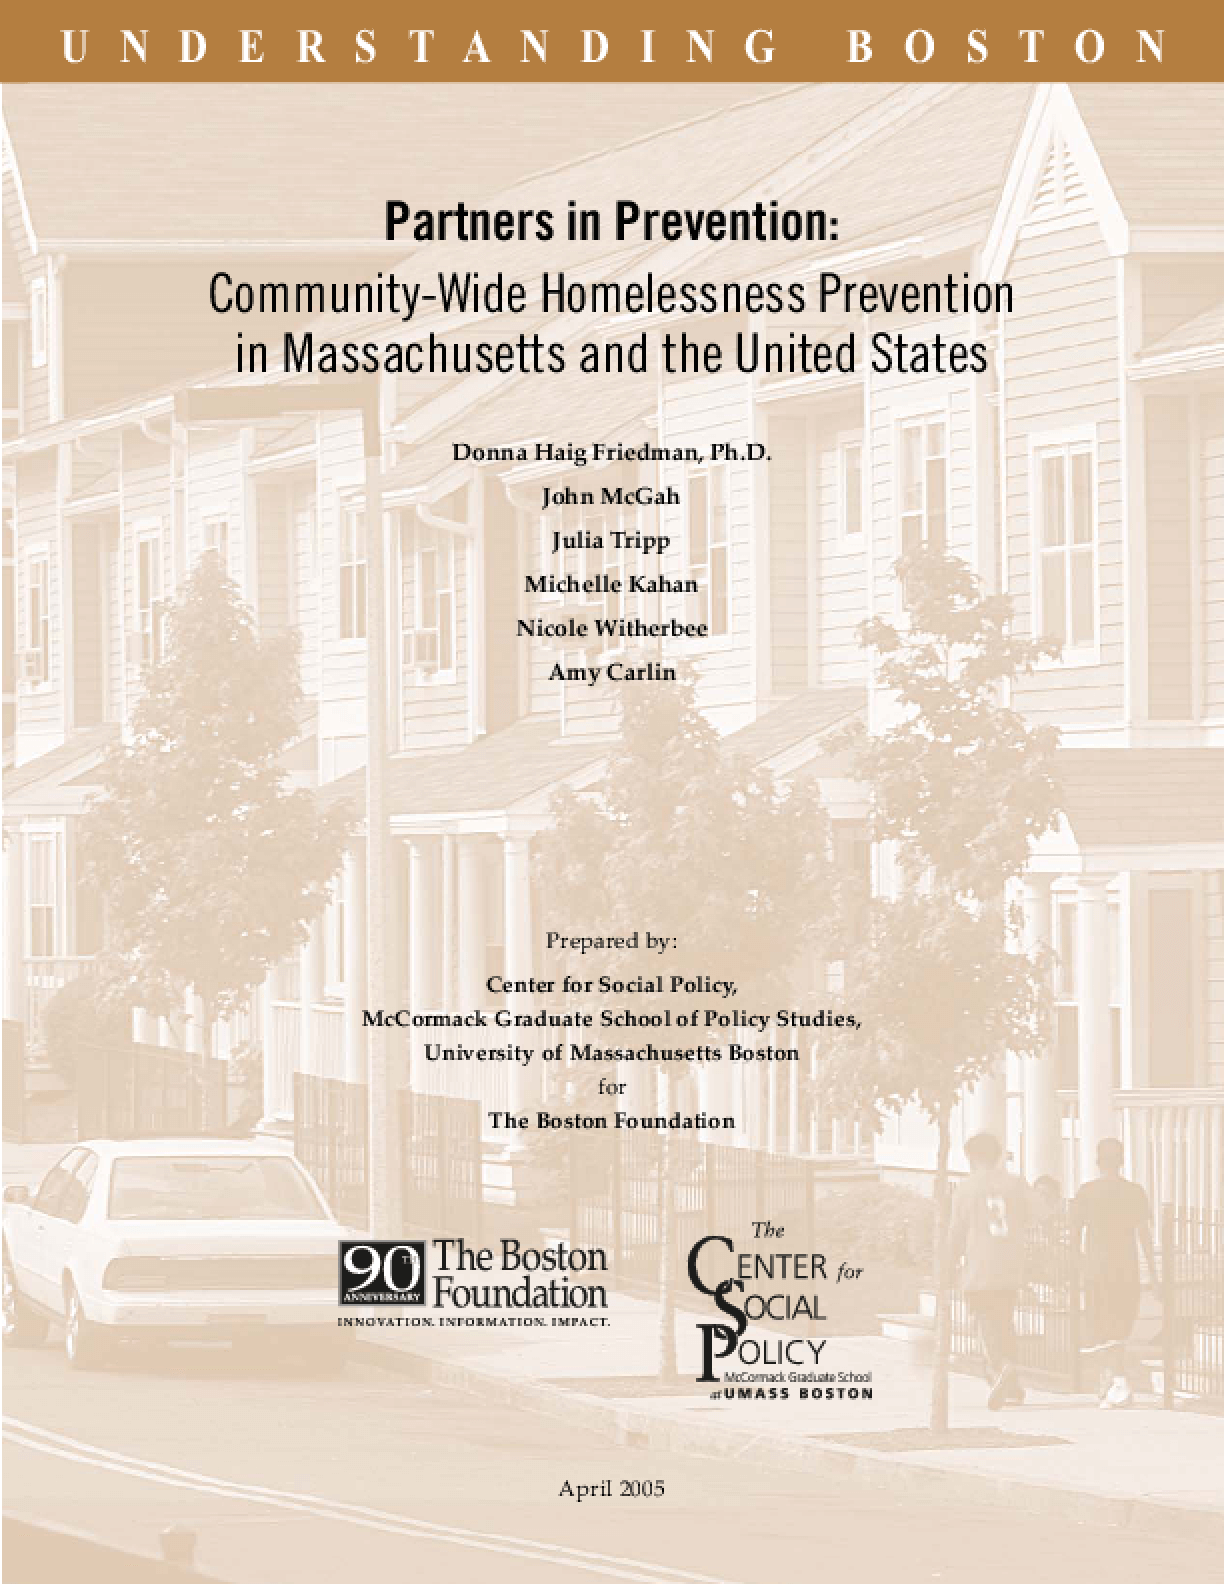 Partners in Prevention: Community-Wide Homelessness Prevention in Massachusetts and the United States